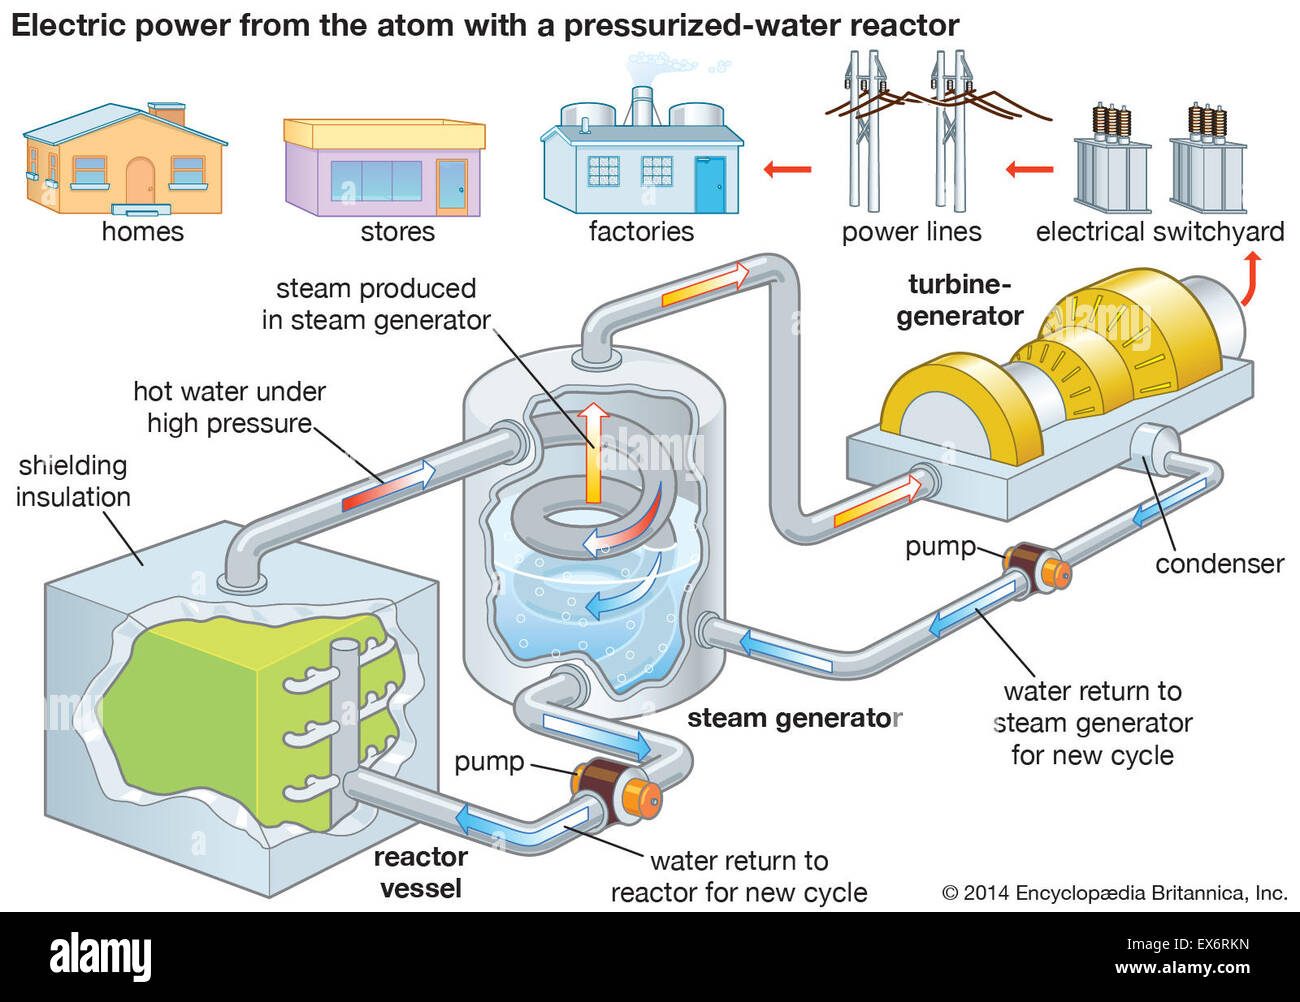 nuclear electrical power generation Radionuclides radionuclide pollution in aquatic ecosystems typically is a byproduct of nuclear power generation, nuclear weapons testing, nuclear waste disposal (low and high level), and natural sources.